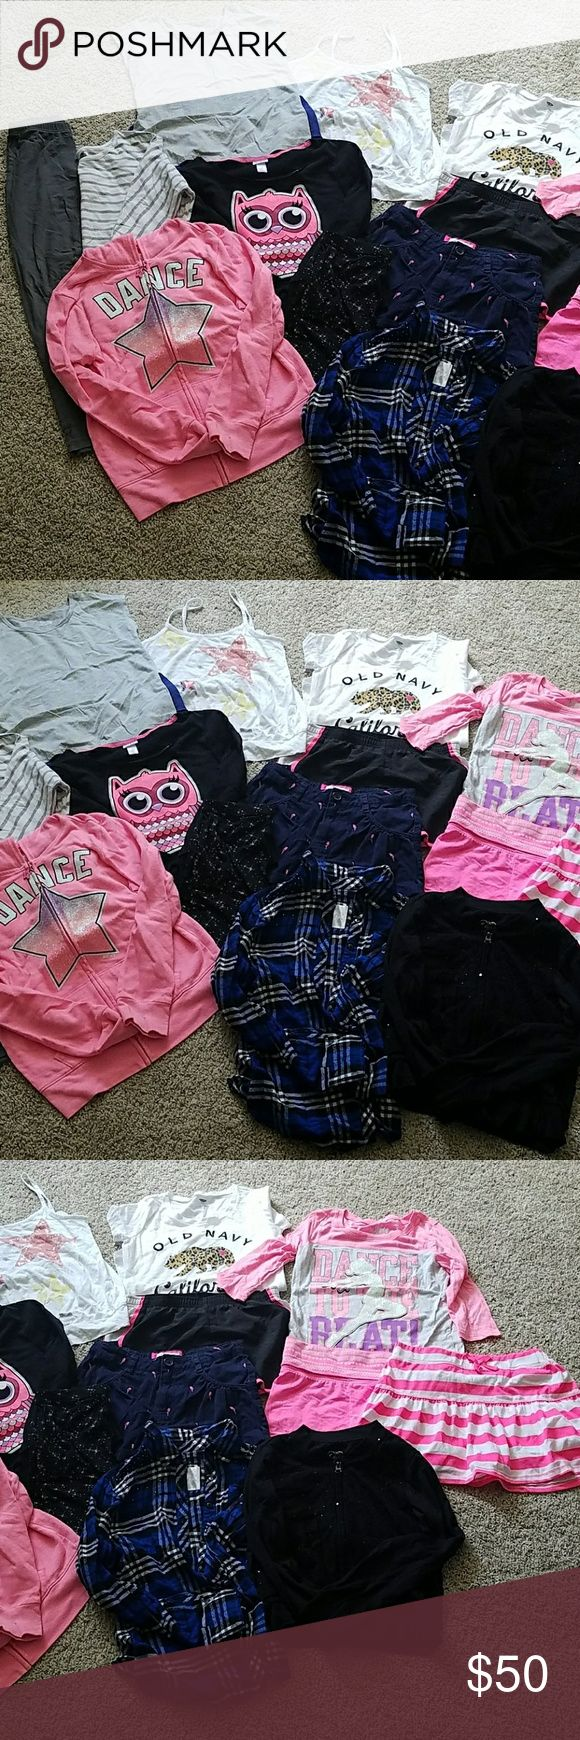 Lot girls size 10/12 clothes, multi brands A lot of fashion for your little fashionista! Like new condition, my daughter barely wore. Shirts & Tops